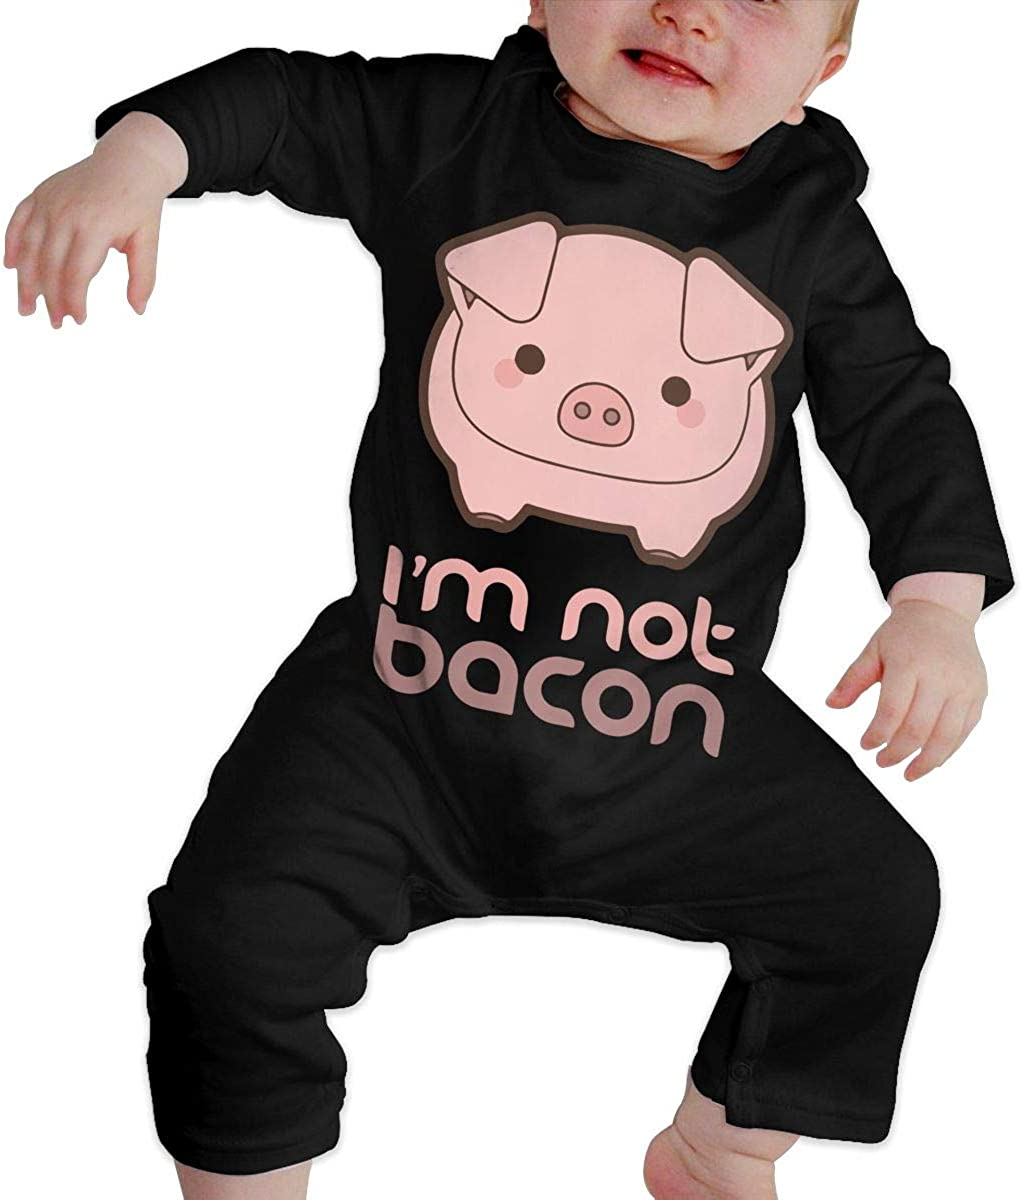 Im Not Bacon Funny Pig Printed Baby Boys Girls One-Piece Suit Long Sleeve Romper Black